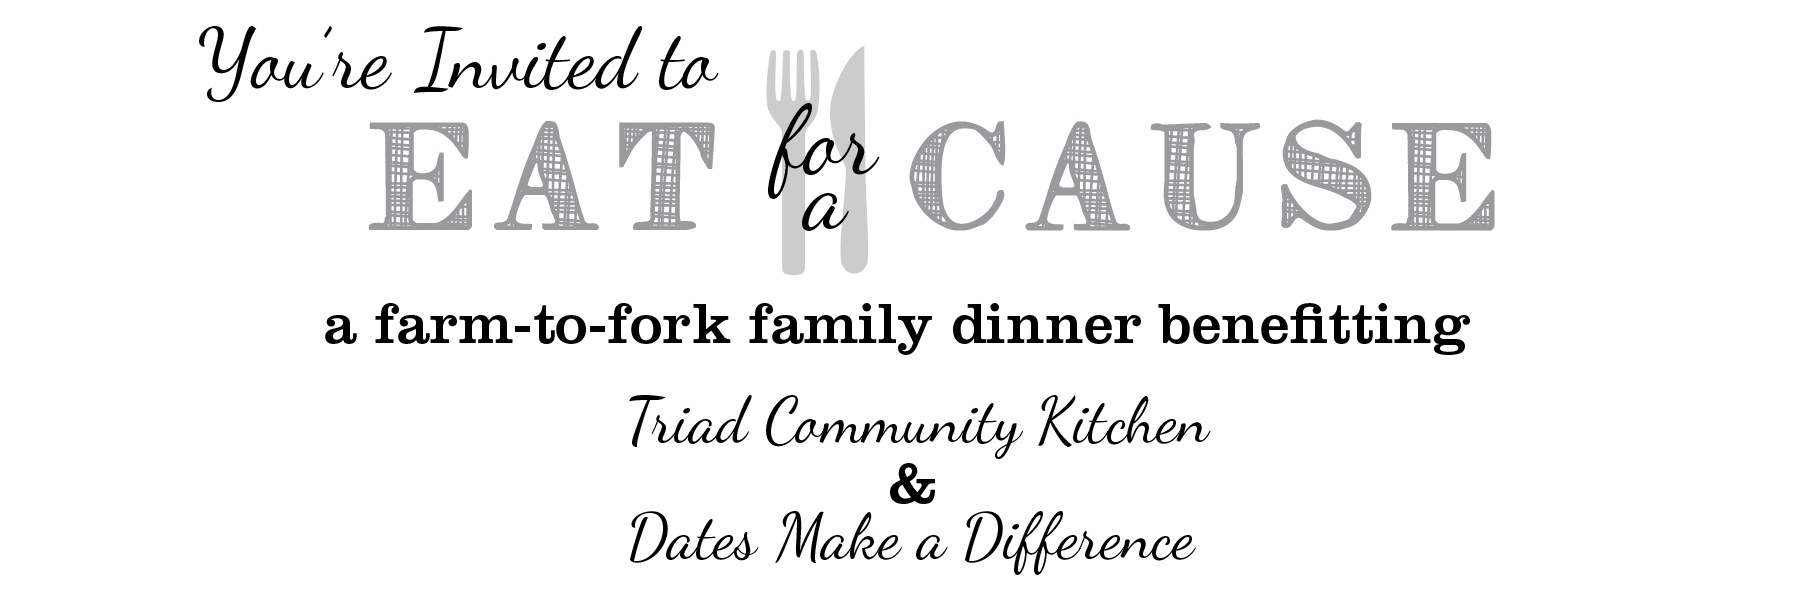 Dates Make a Difference: Eat for a Cause event – The Onyx Plate